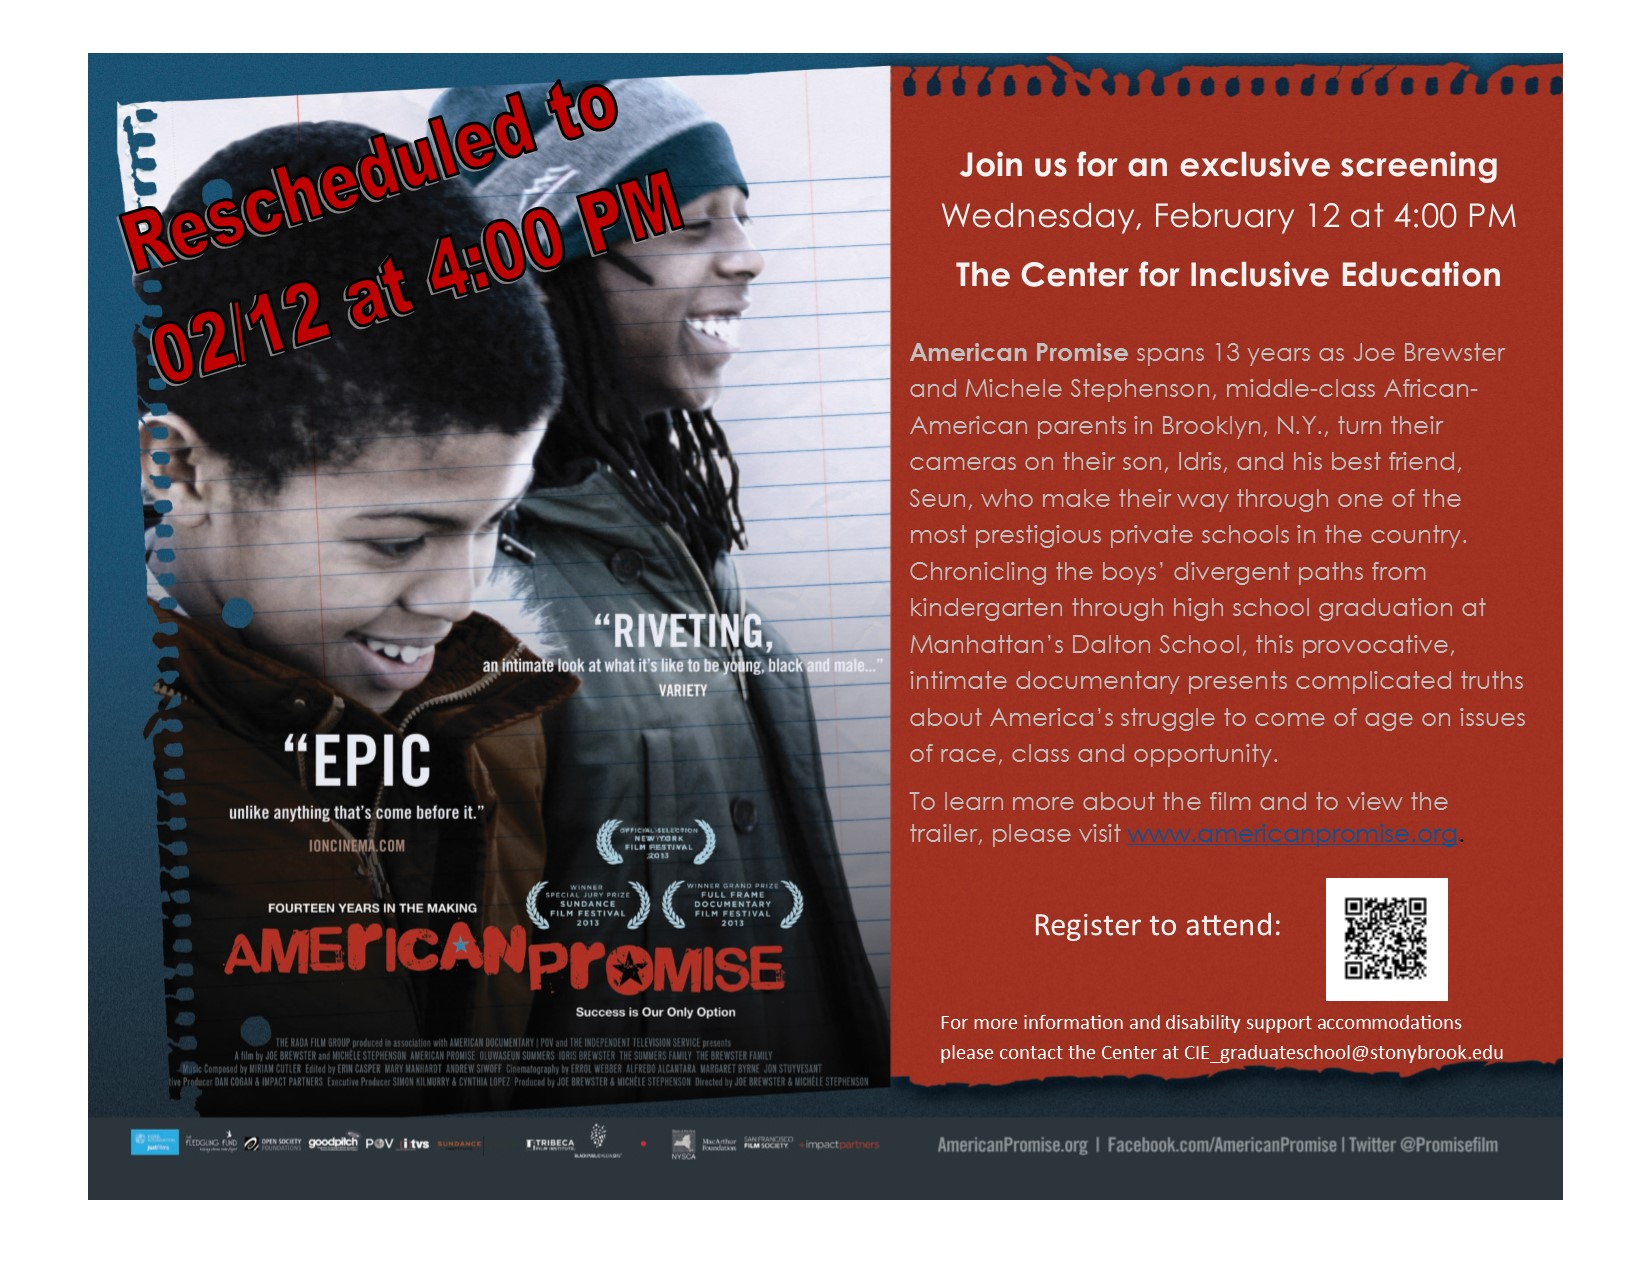 American Promise Rescheduled for February 12